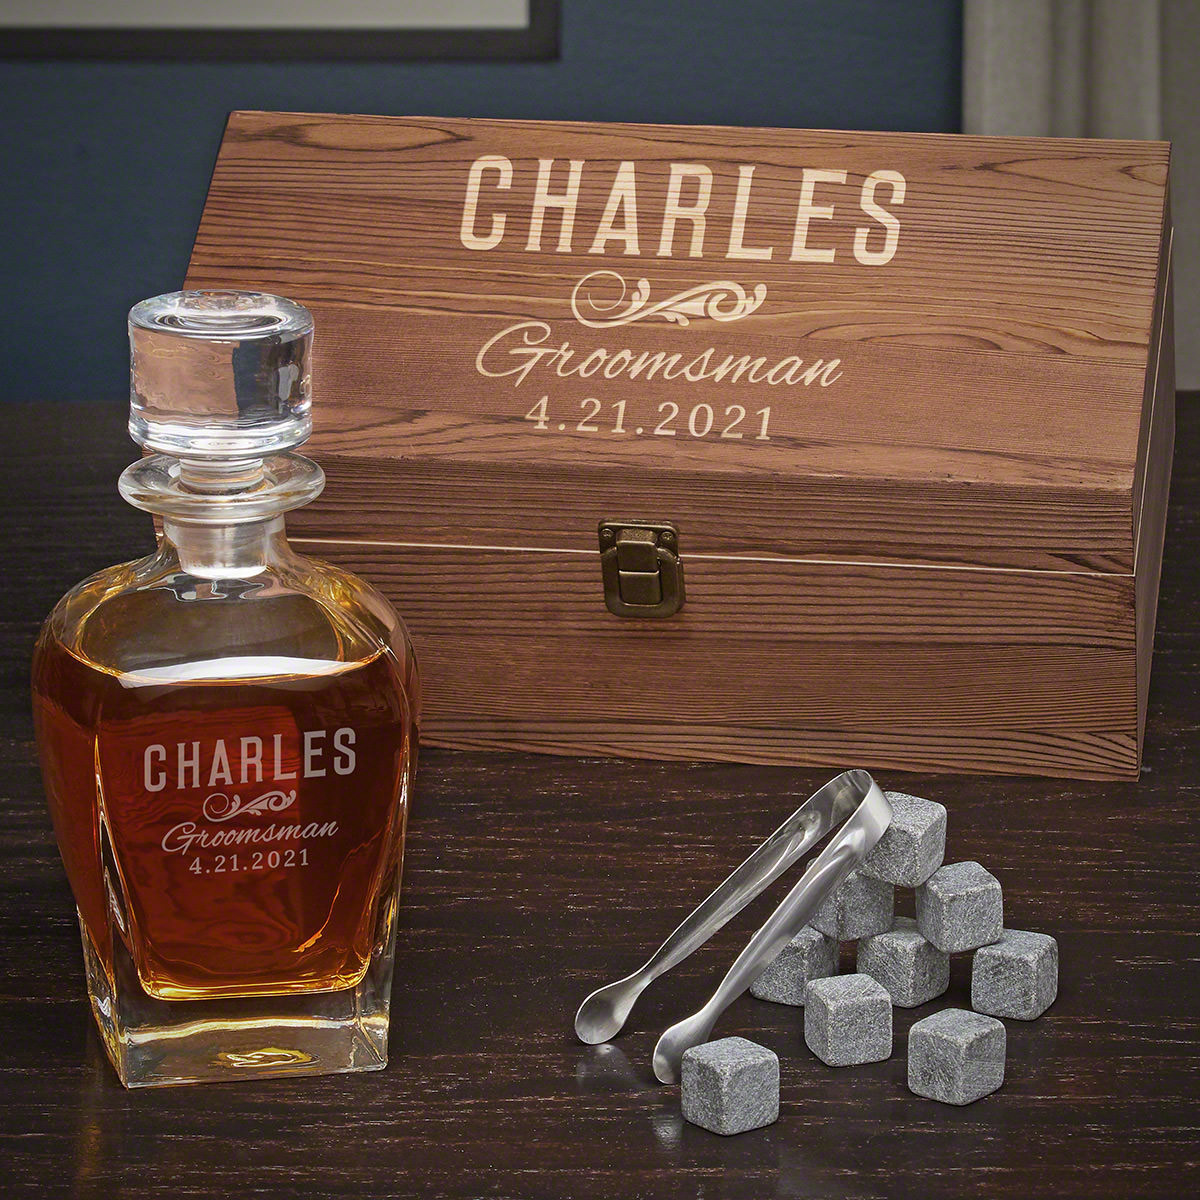 Your best man deserves a truly awesome gift as a thank you for standing by you at the altar and his long years of friendship. This personalized whiskey gift for best man is the perfect gift to show your appreciation. The set comes with a gift box, a liquo #best